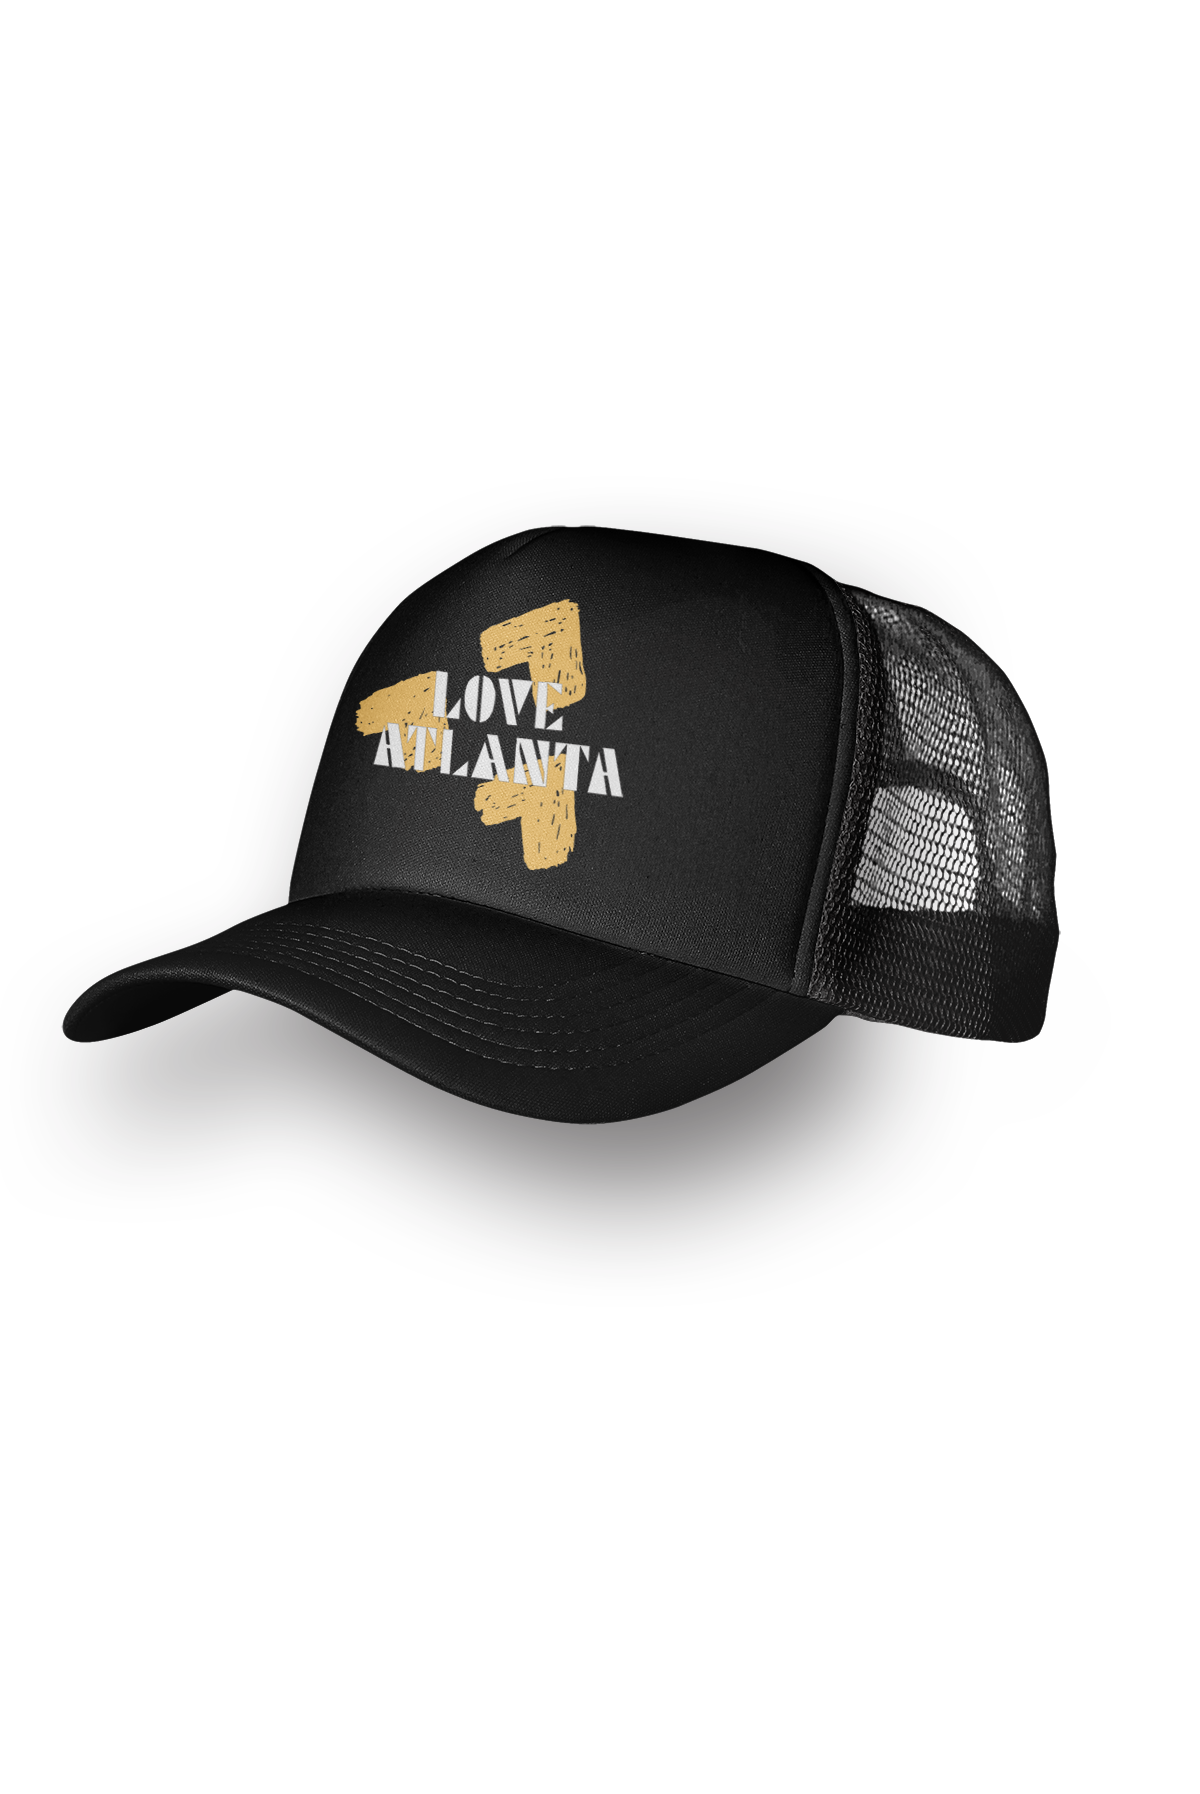 LOVE ATLANTA 2019 Trucker Hat